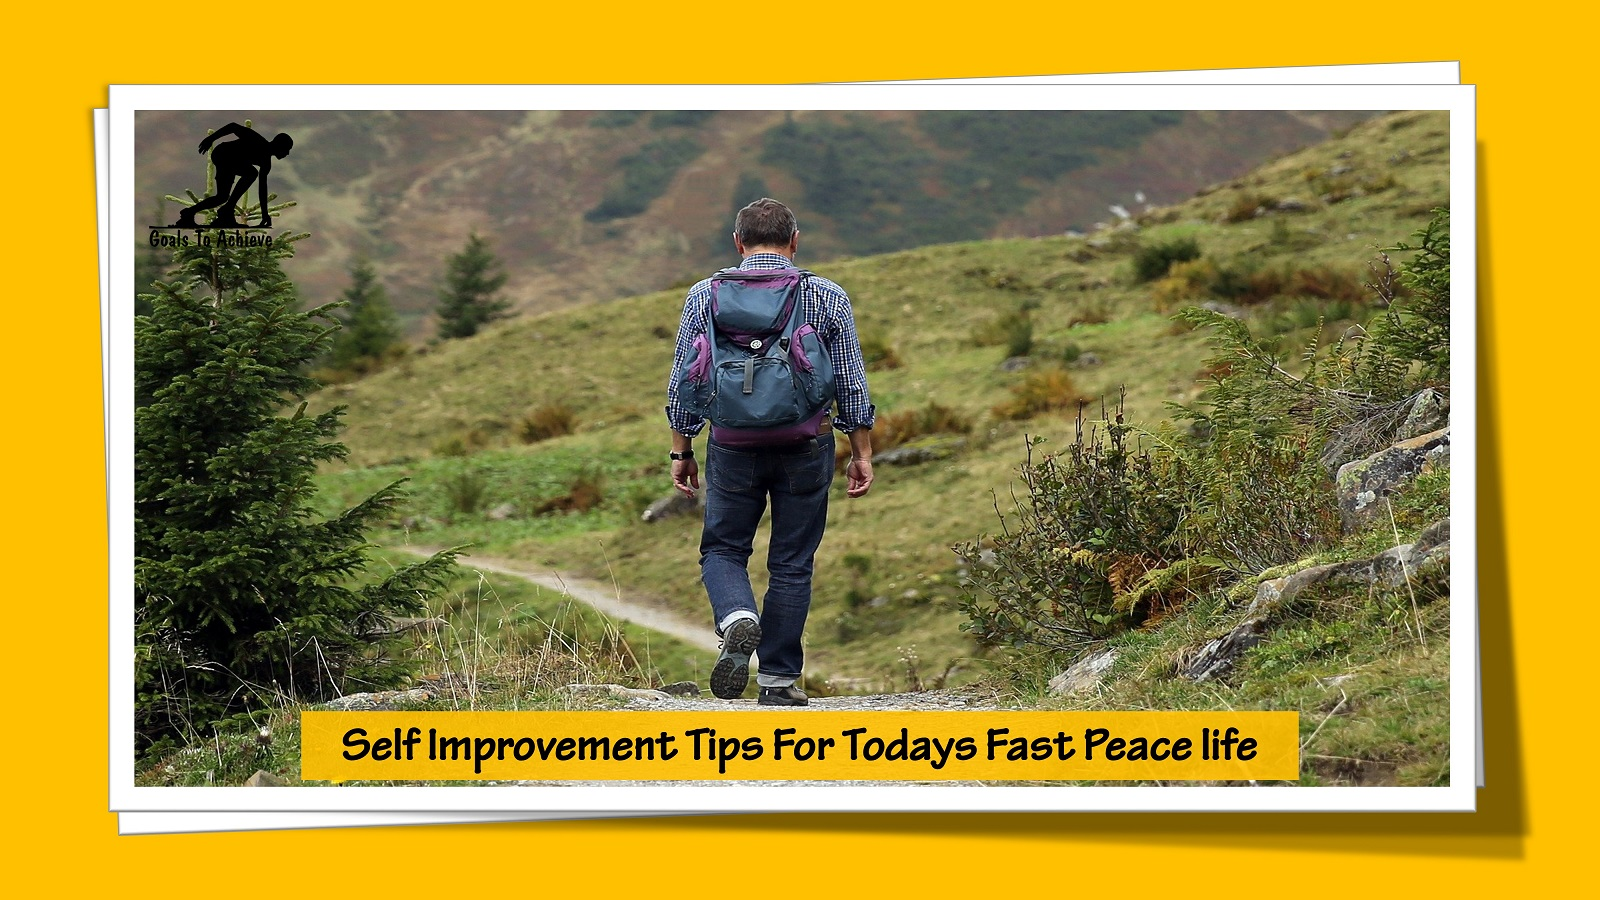 Self Improvement Tips For Todays Fast Peace life